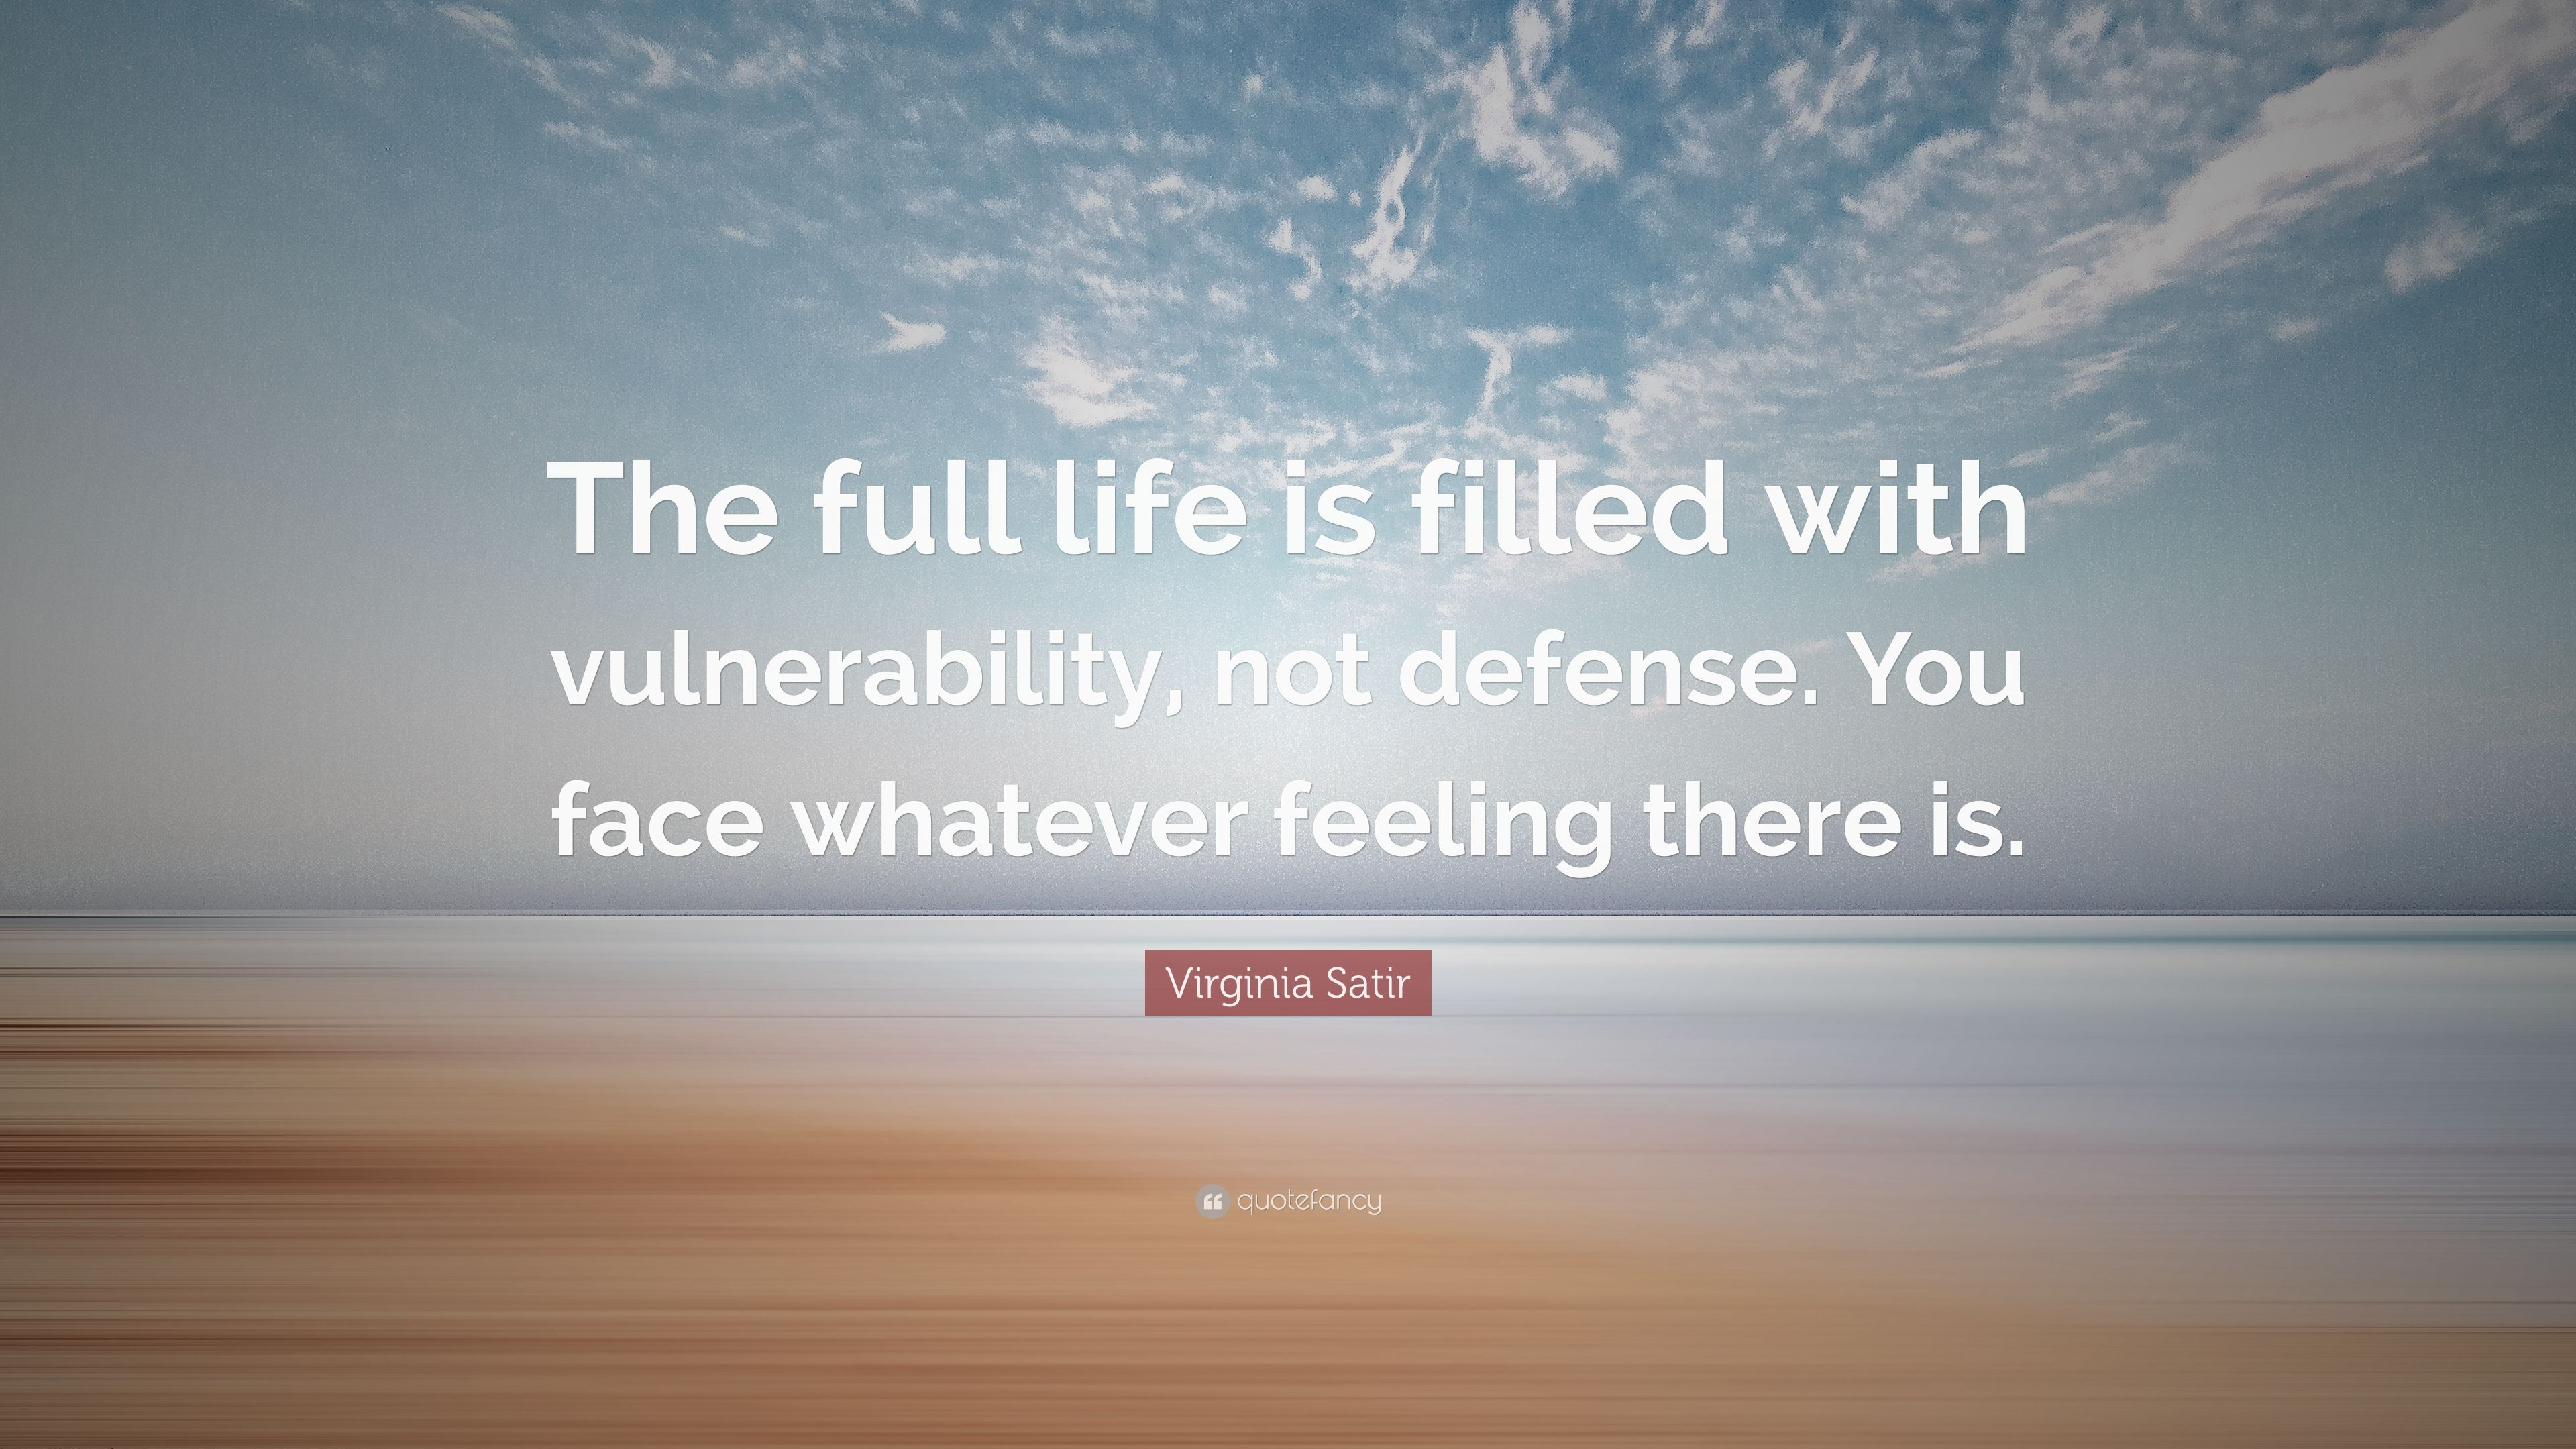 Virginia Satir Quote: The full life is filled with